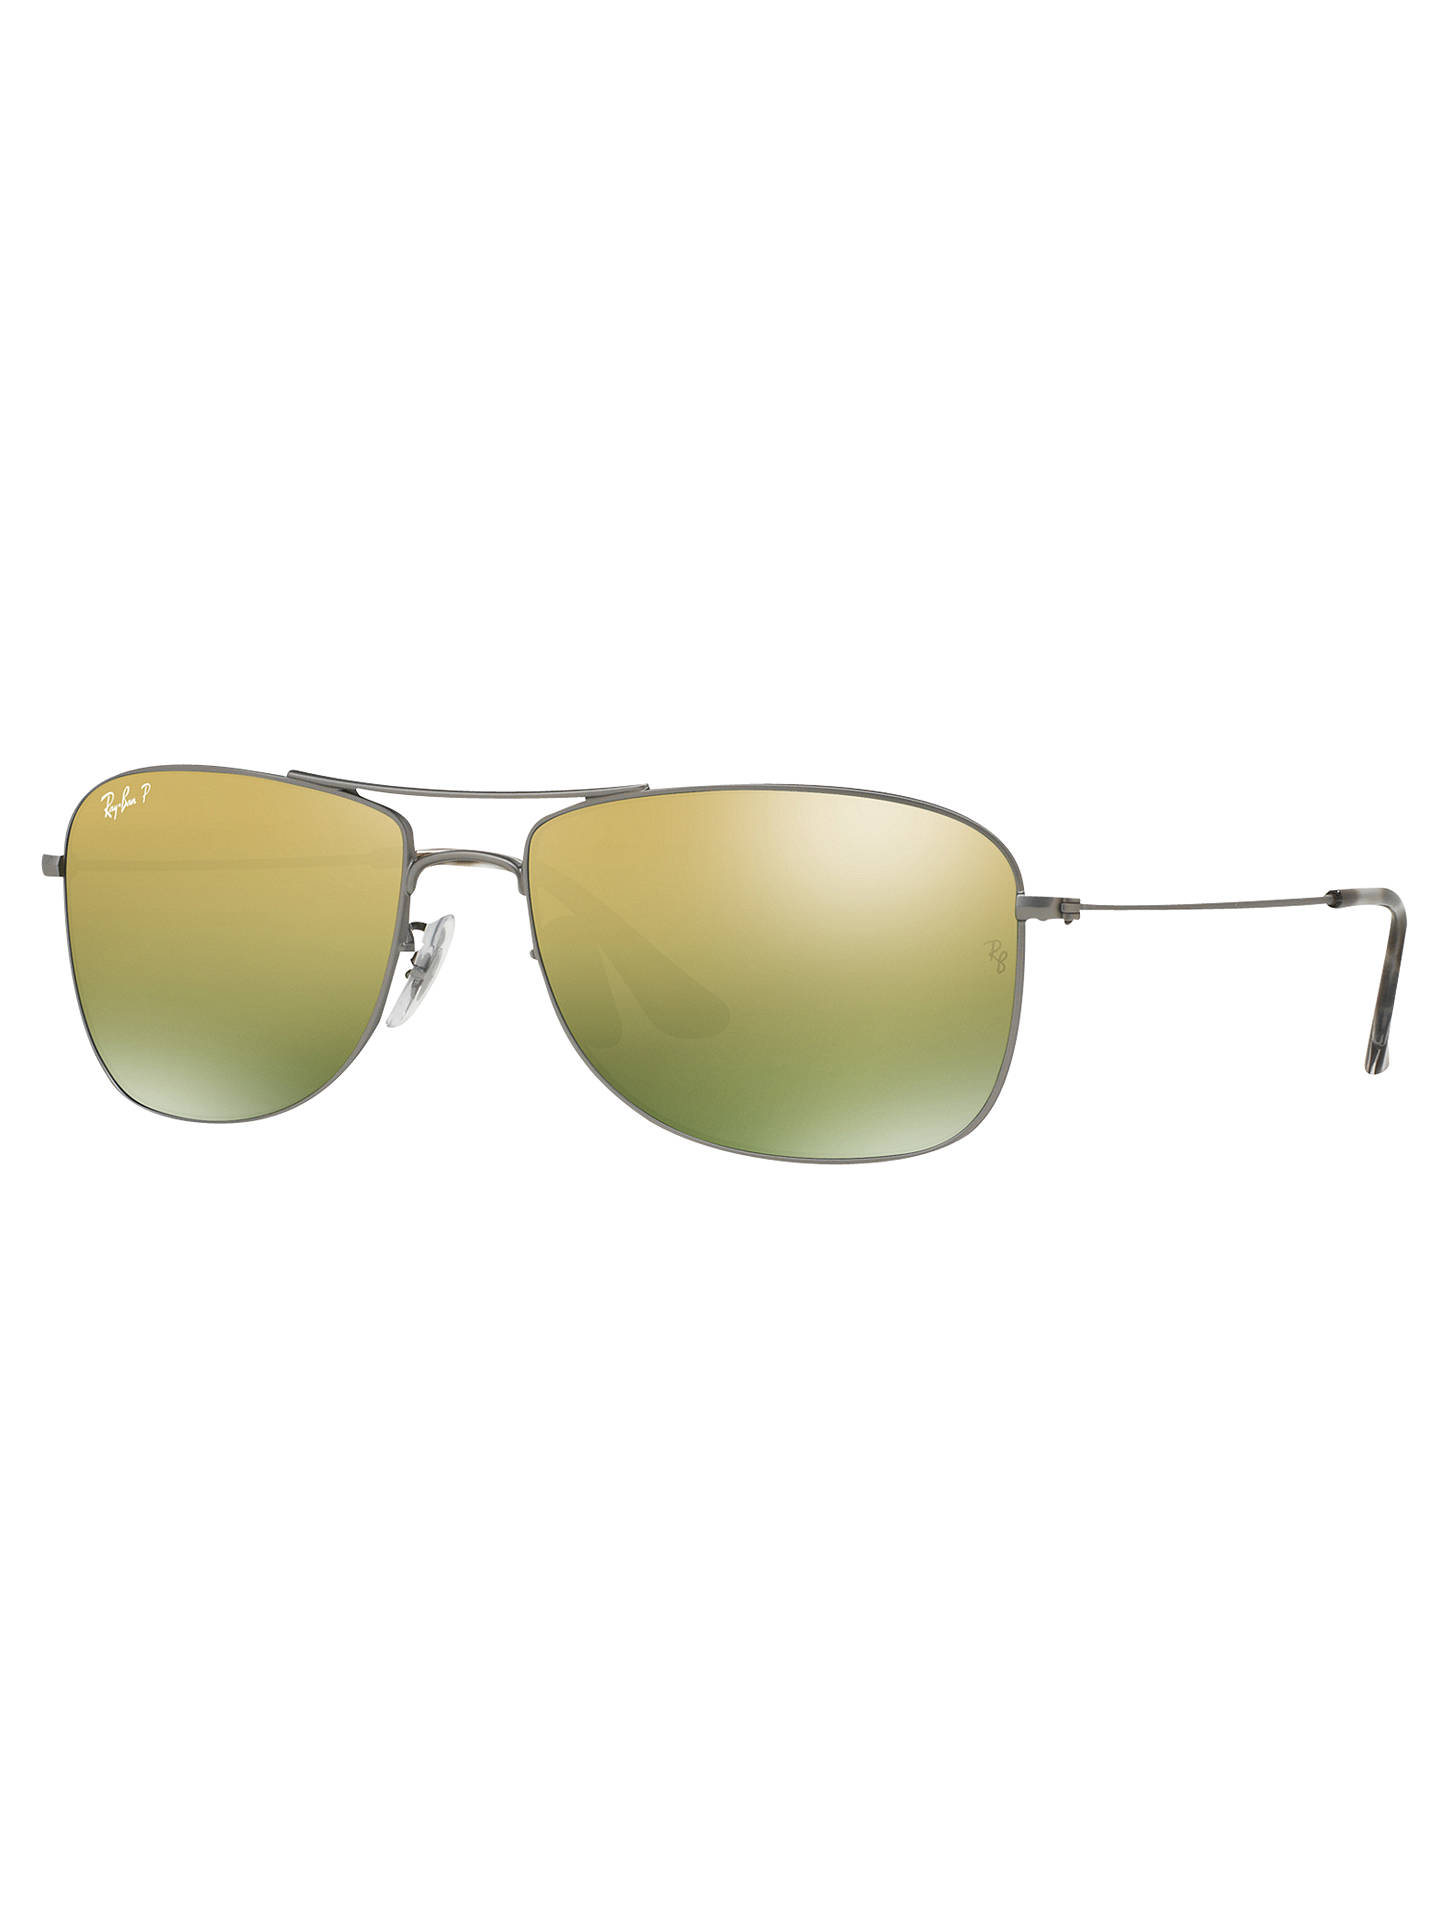 a1246df5a4b Ray-Ban RB3543 Polarised Aviator Sunglasses at John Lewis   Partners